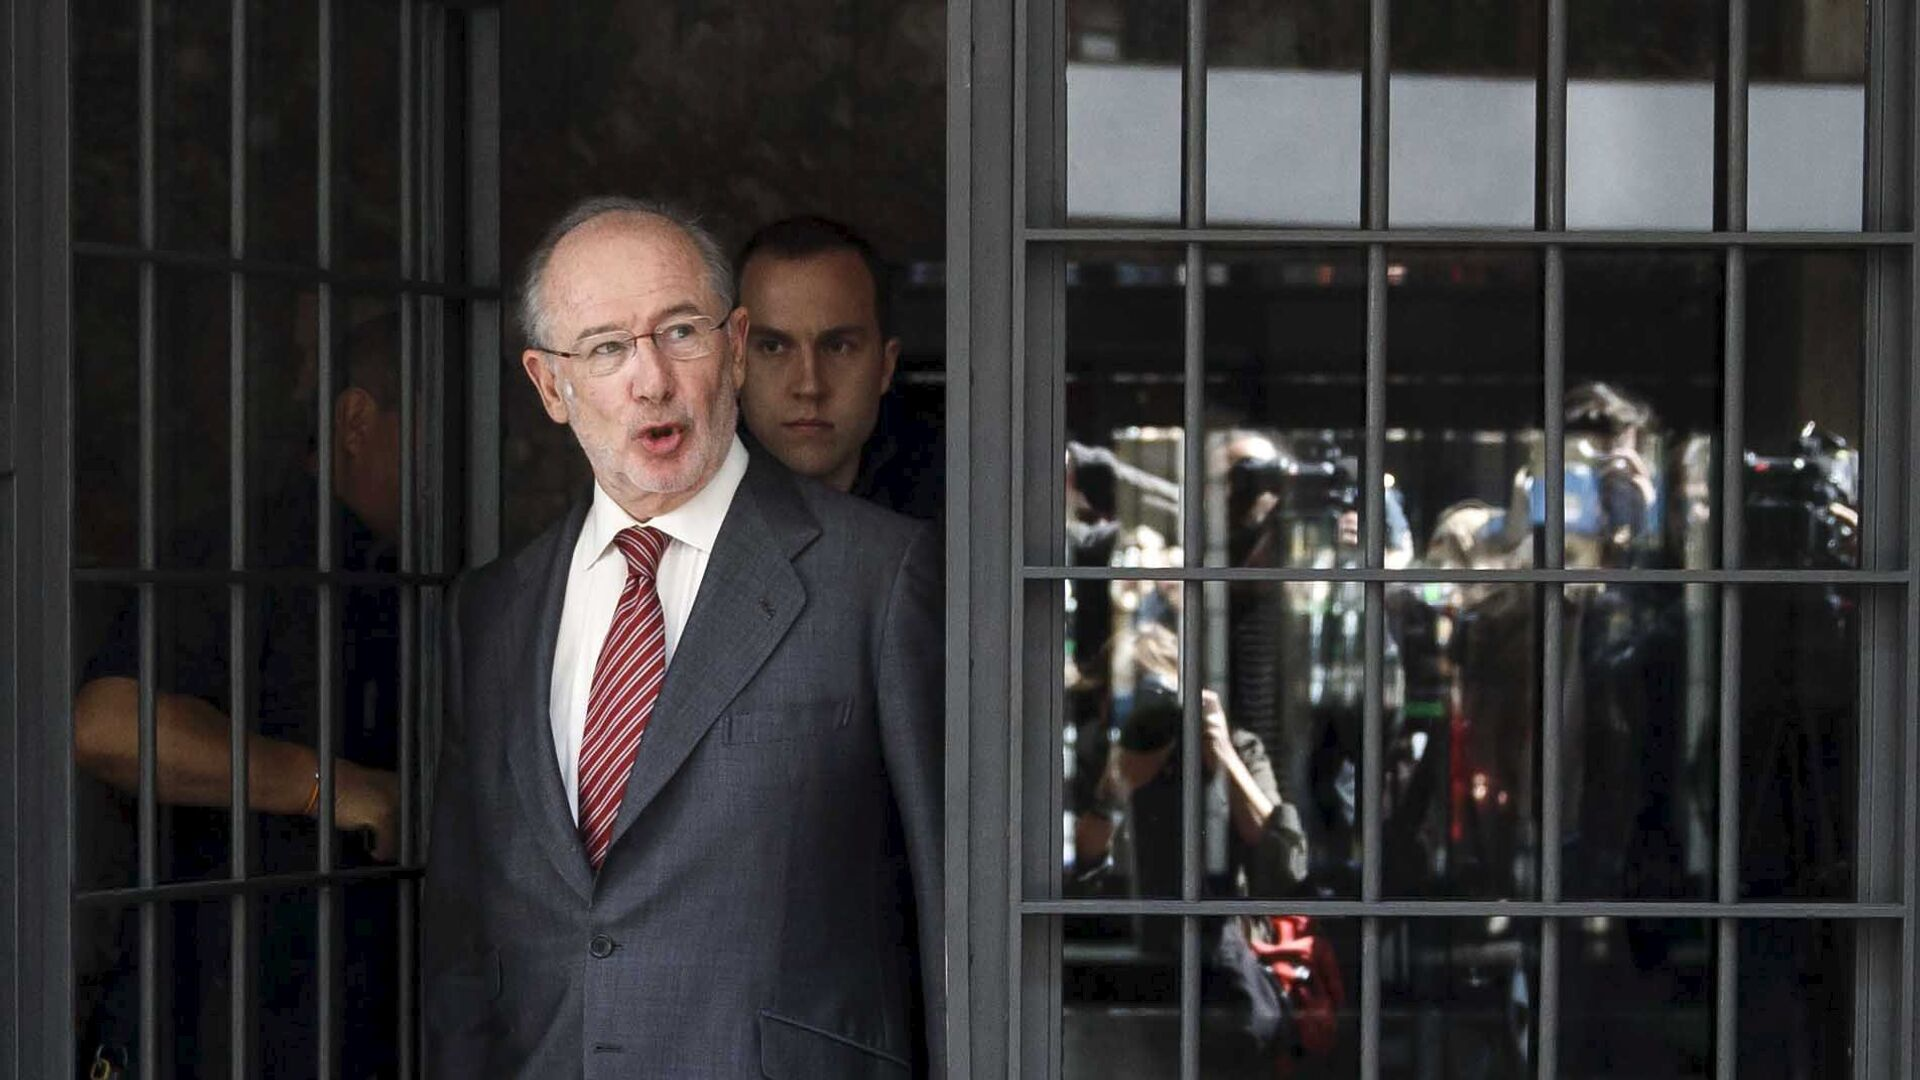 Former International Monetary Fund chief Rodrigo Rato steps out of his home in Madrid April 17, 2015.  - Sputnik Mundo, 1920, 23.03.2021